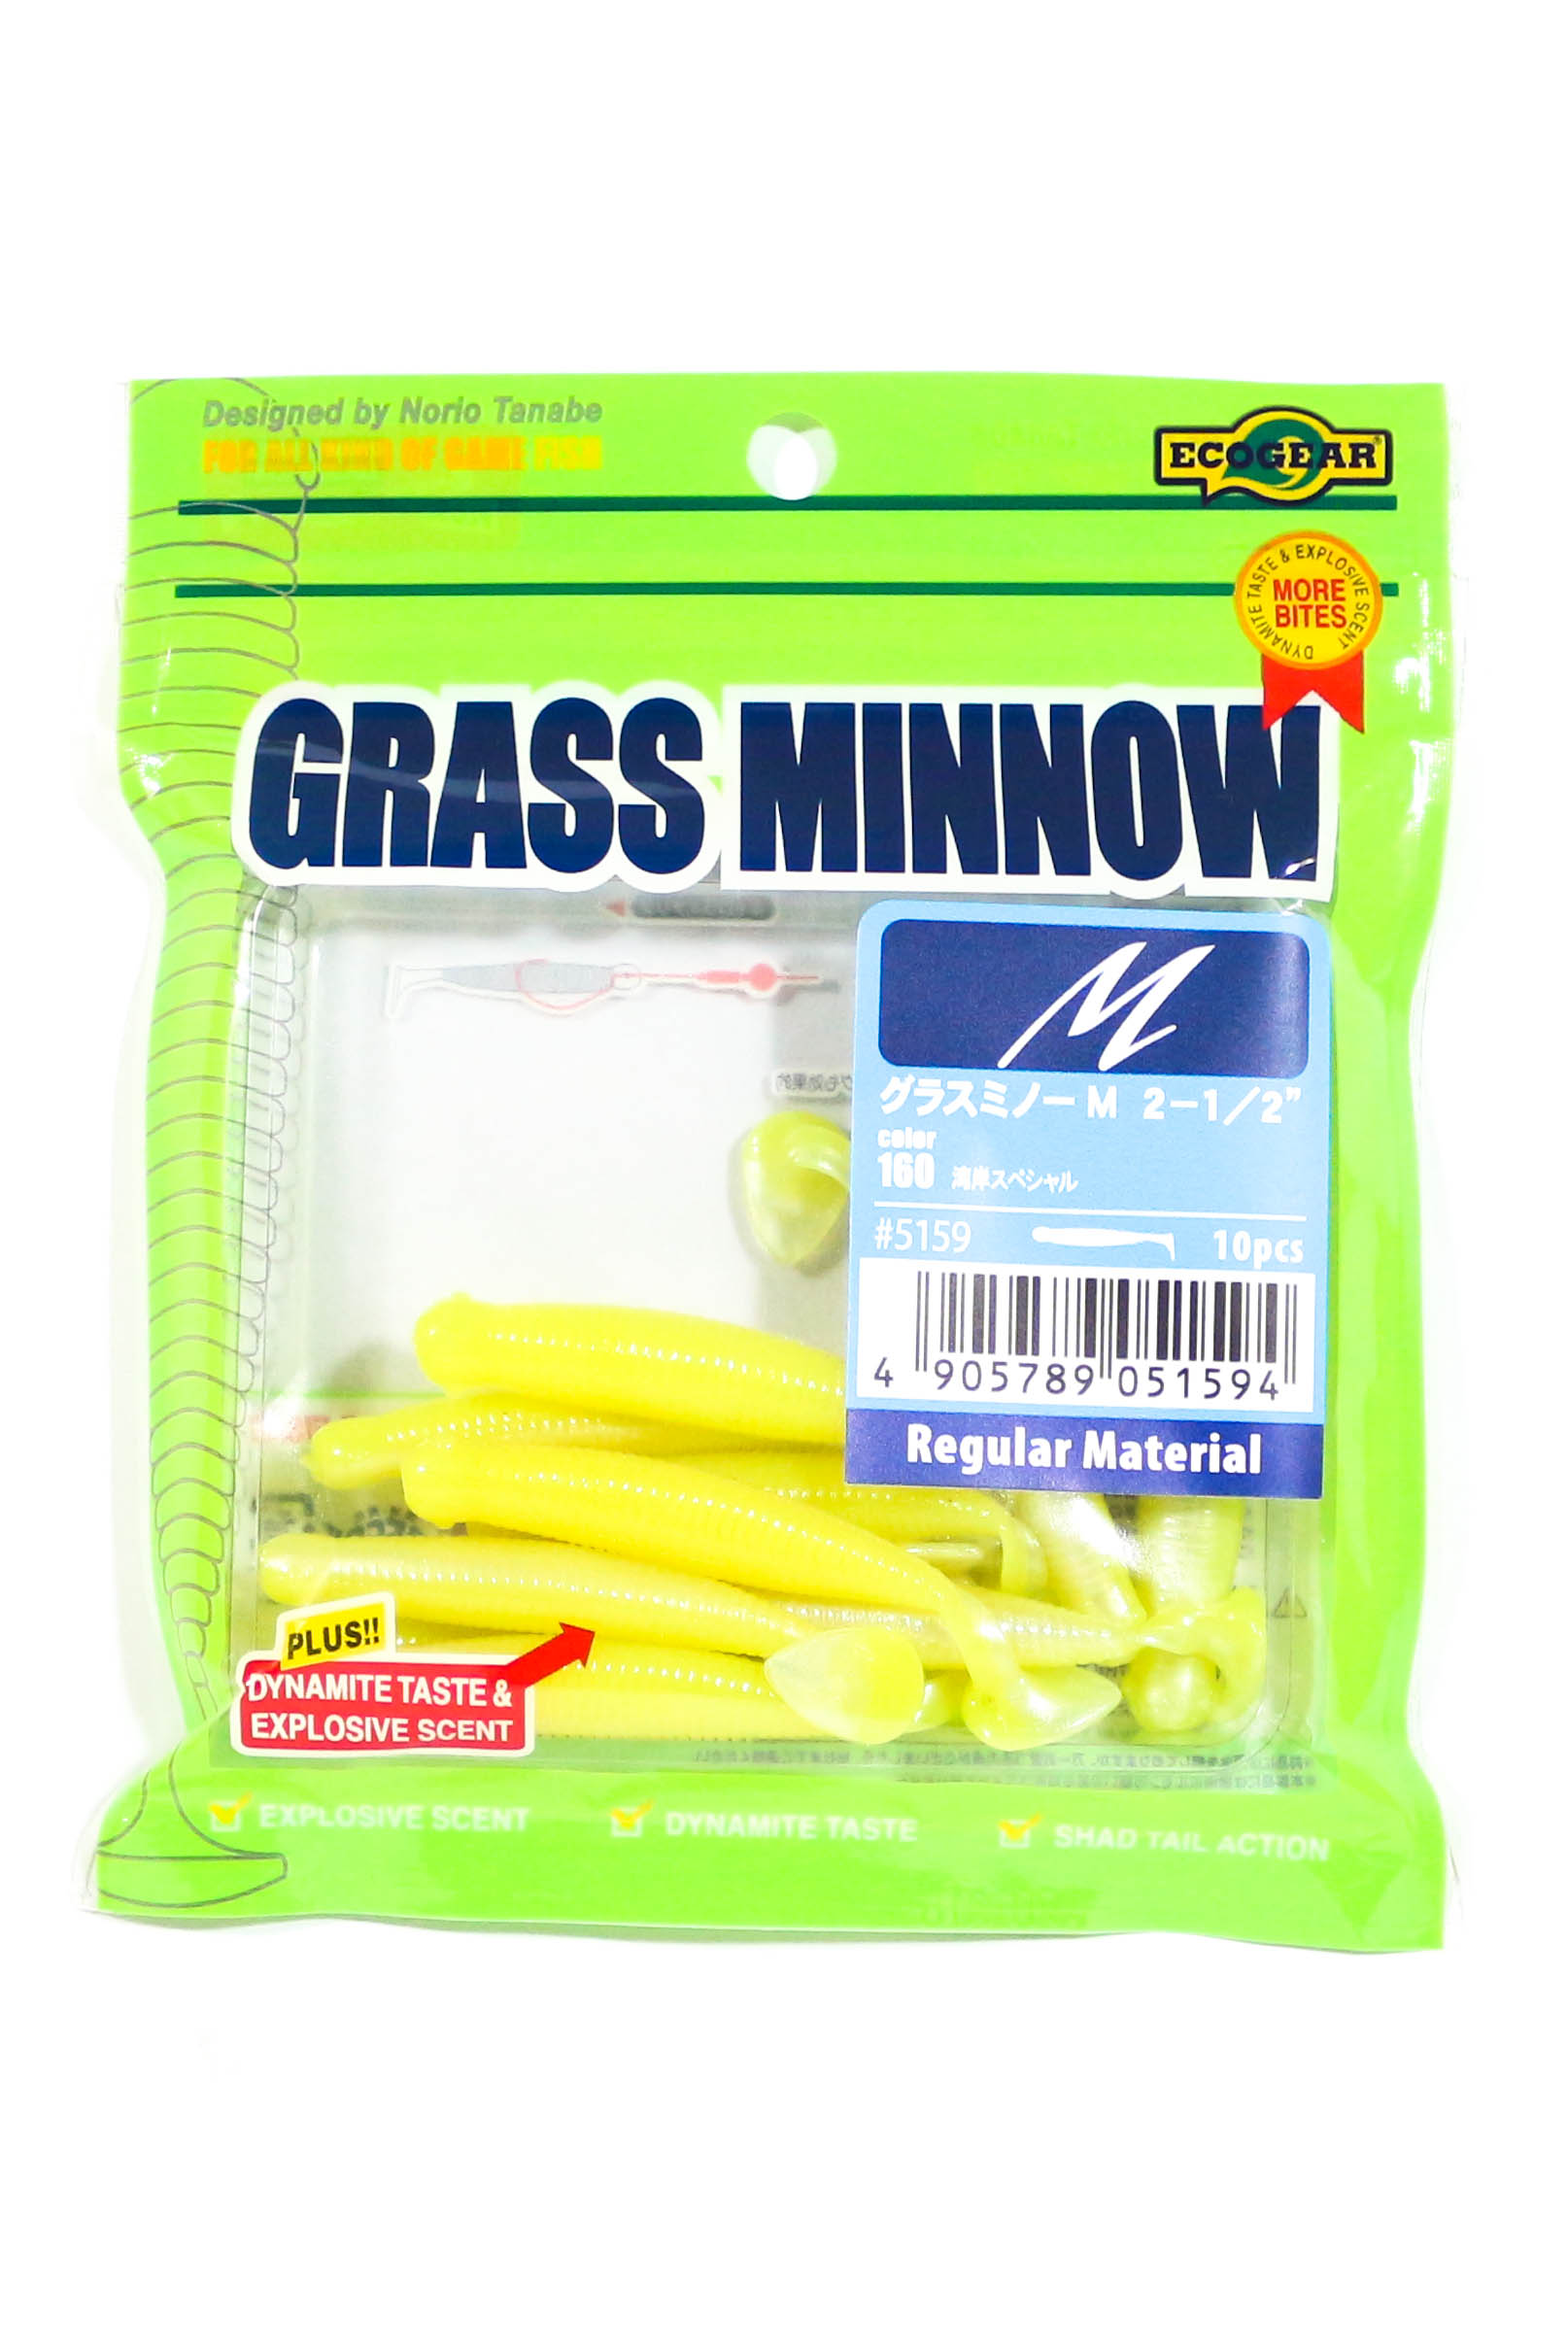 Ecogear Soft Lure Grass Minnow M 2-1/2 Inch 10 piece per pack 160 (1594)